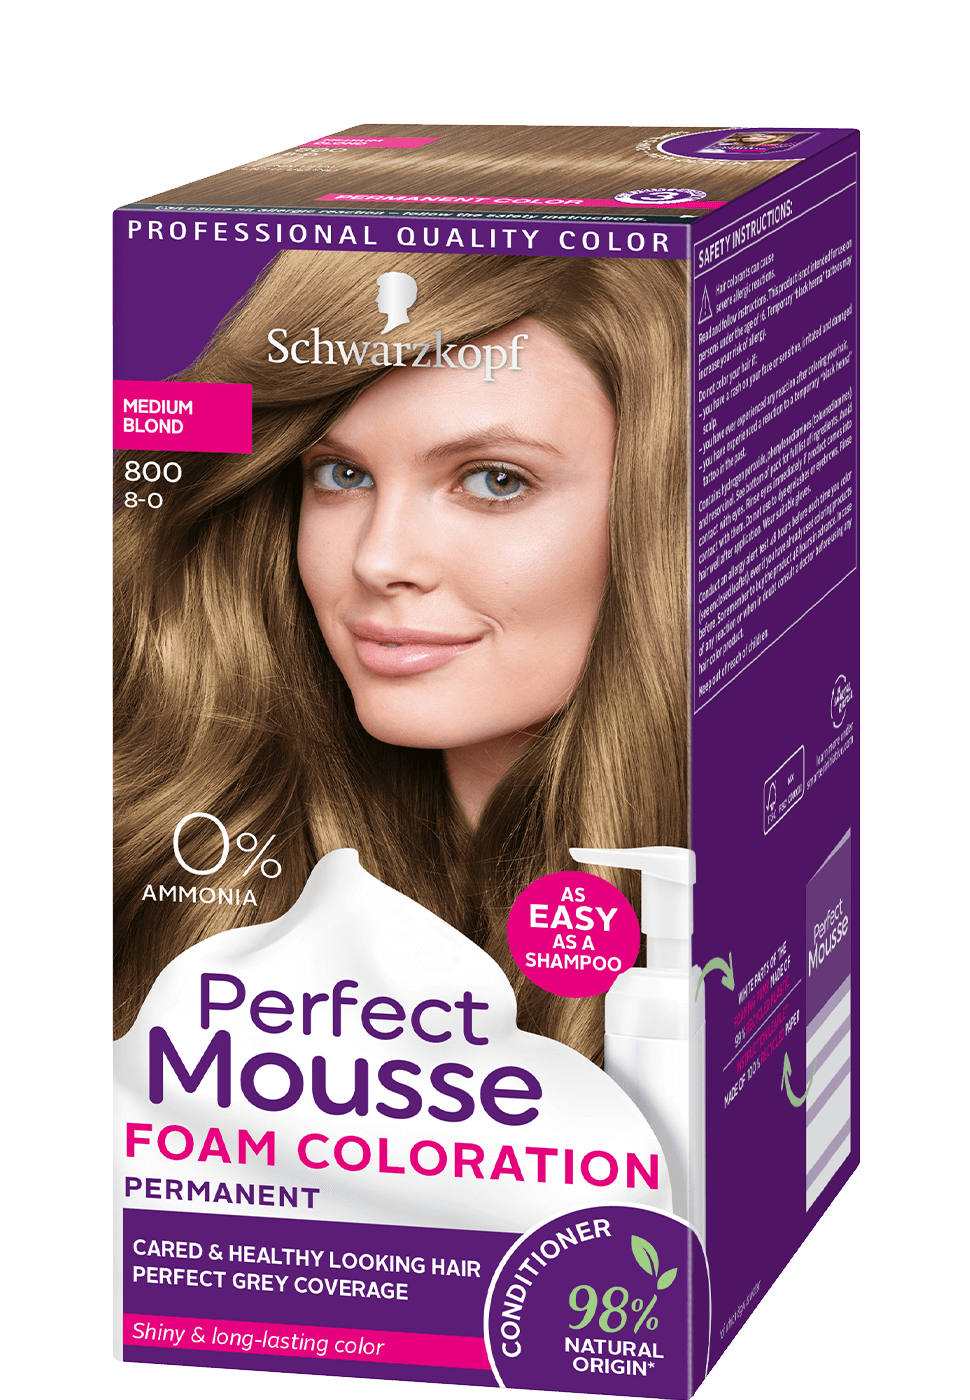 perfect_mousse_com_800_medium_blond_970x1400